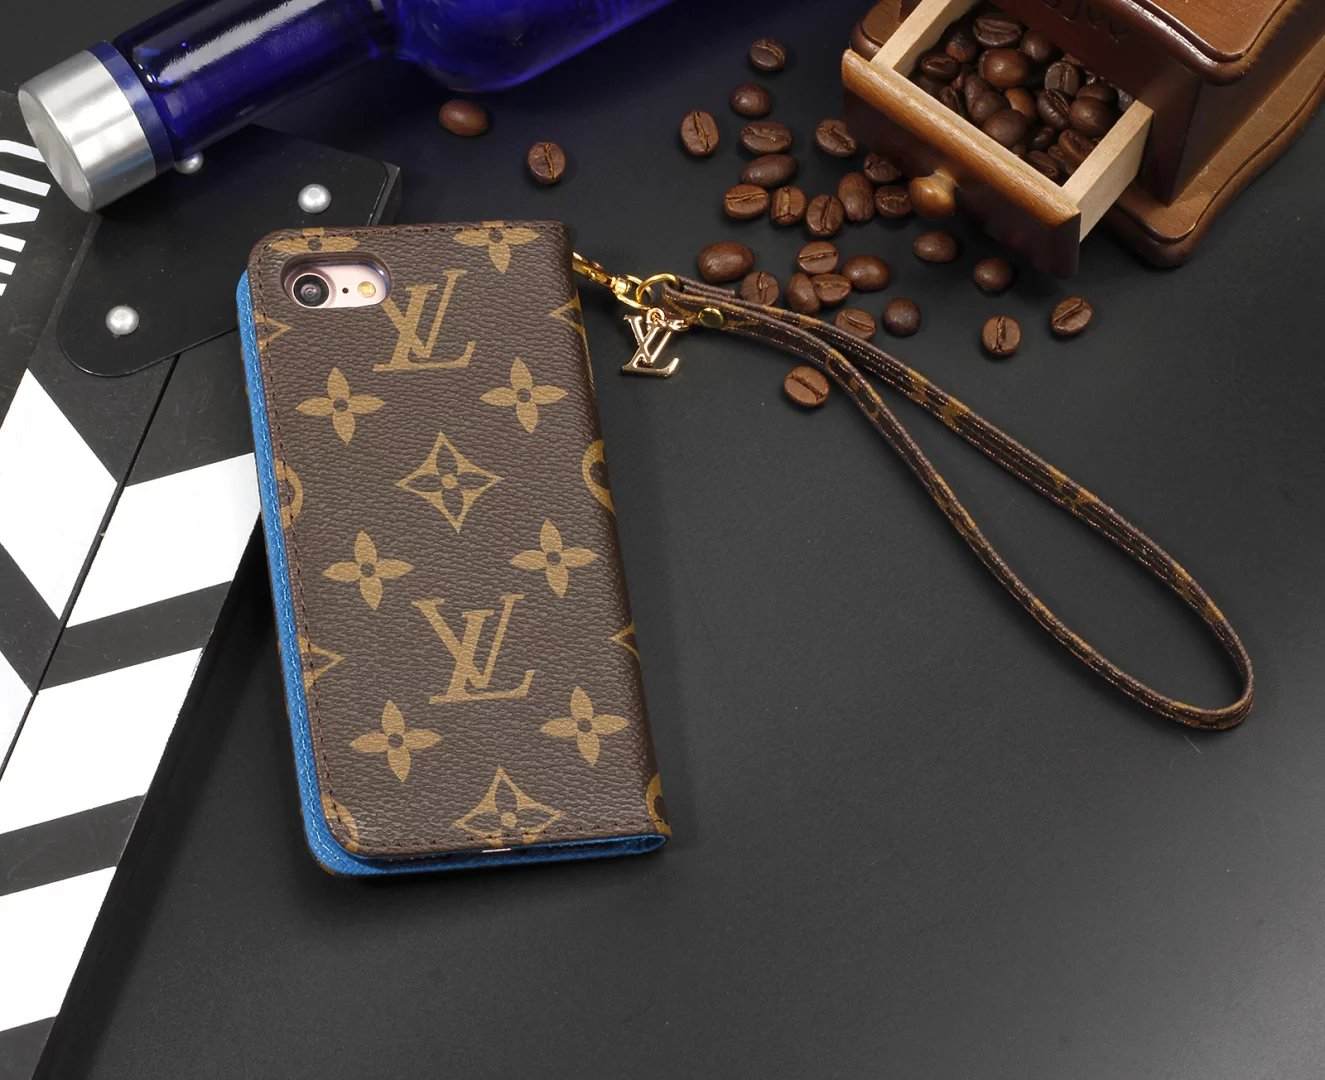 best case for iphone 6s iphone 6s case fashion fashion iphone6s case mobile phone case iphone case display iphone s covers iphone 6sgs cases iphone 6s cases website best cases for iphone 6s